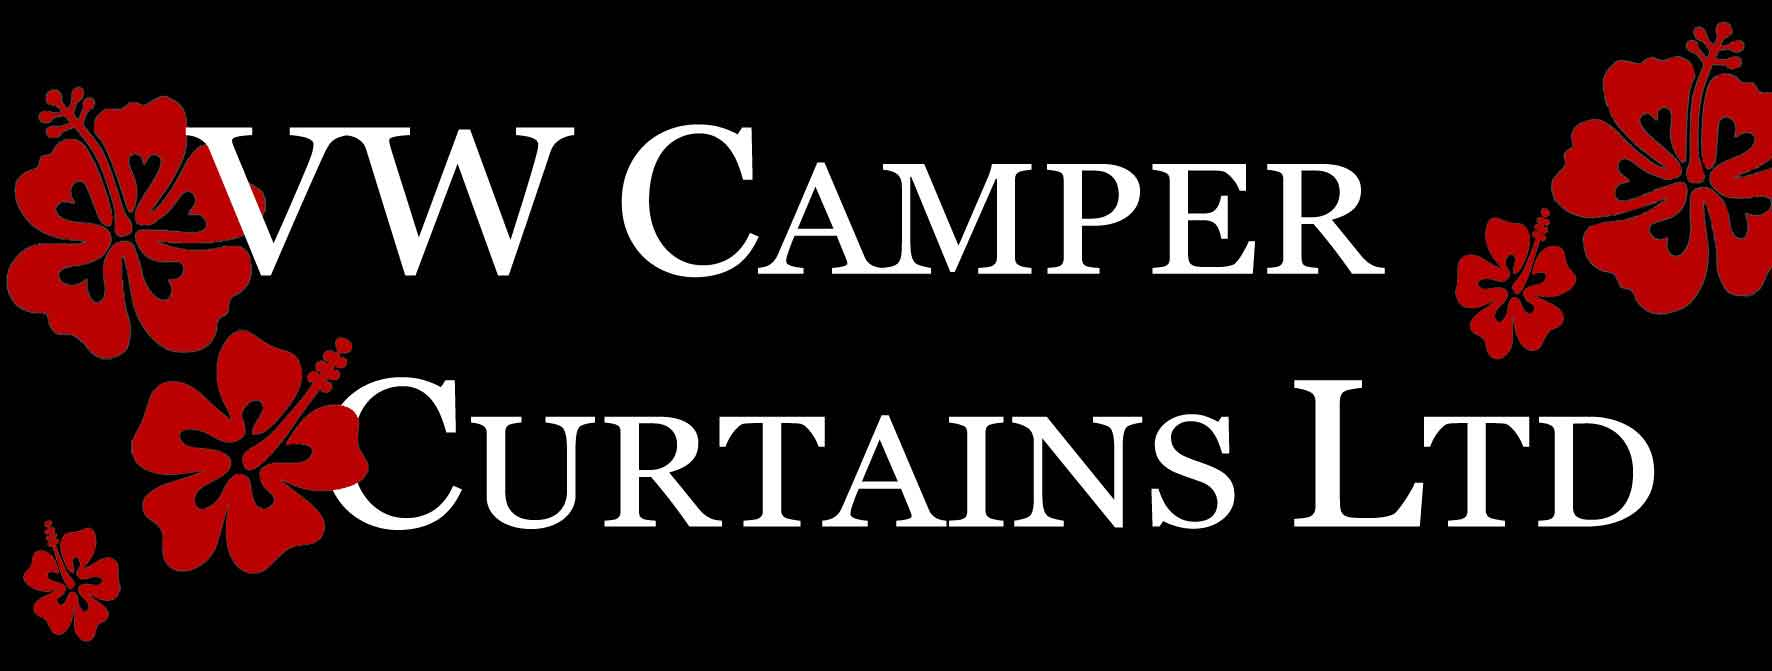 VW Camper Curtains Ltd   Curtains U0026 Covers Made To Order ~ Over 600 Fabrics  Available